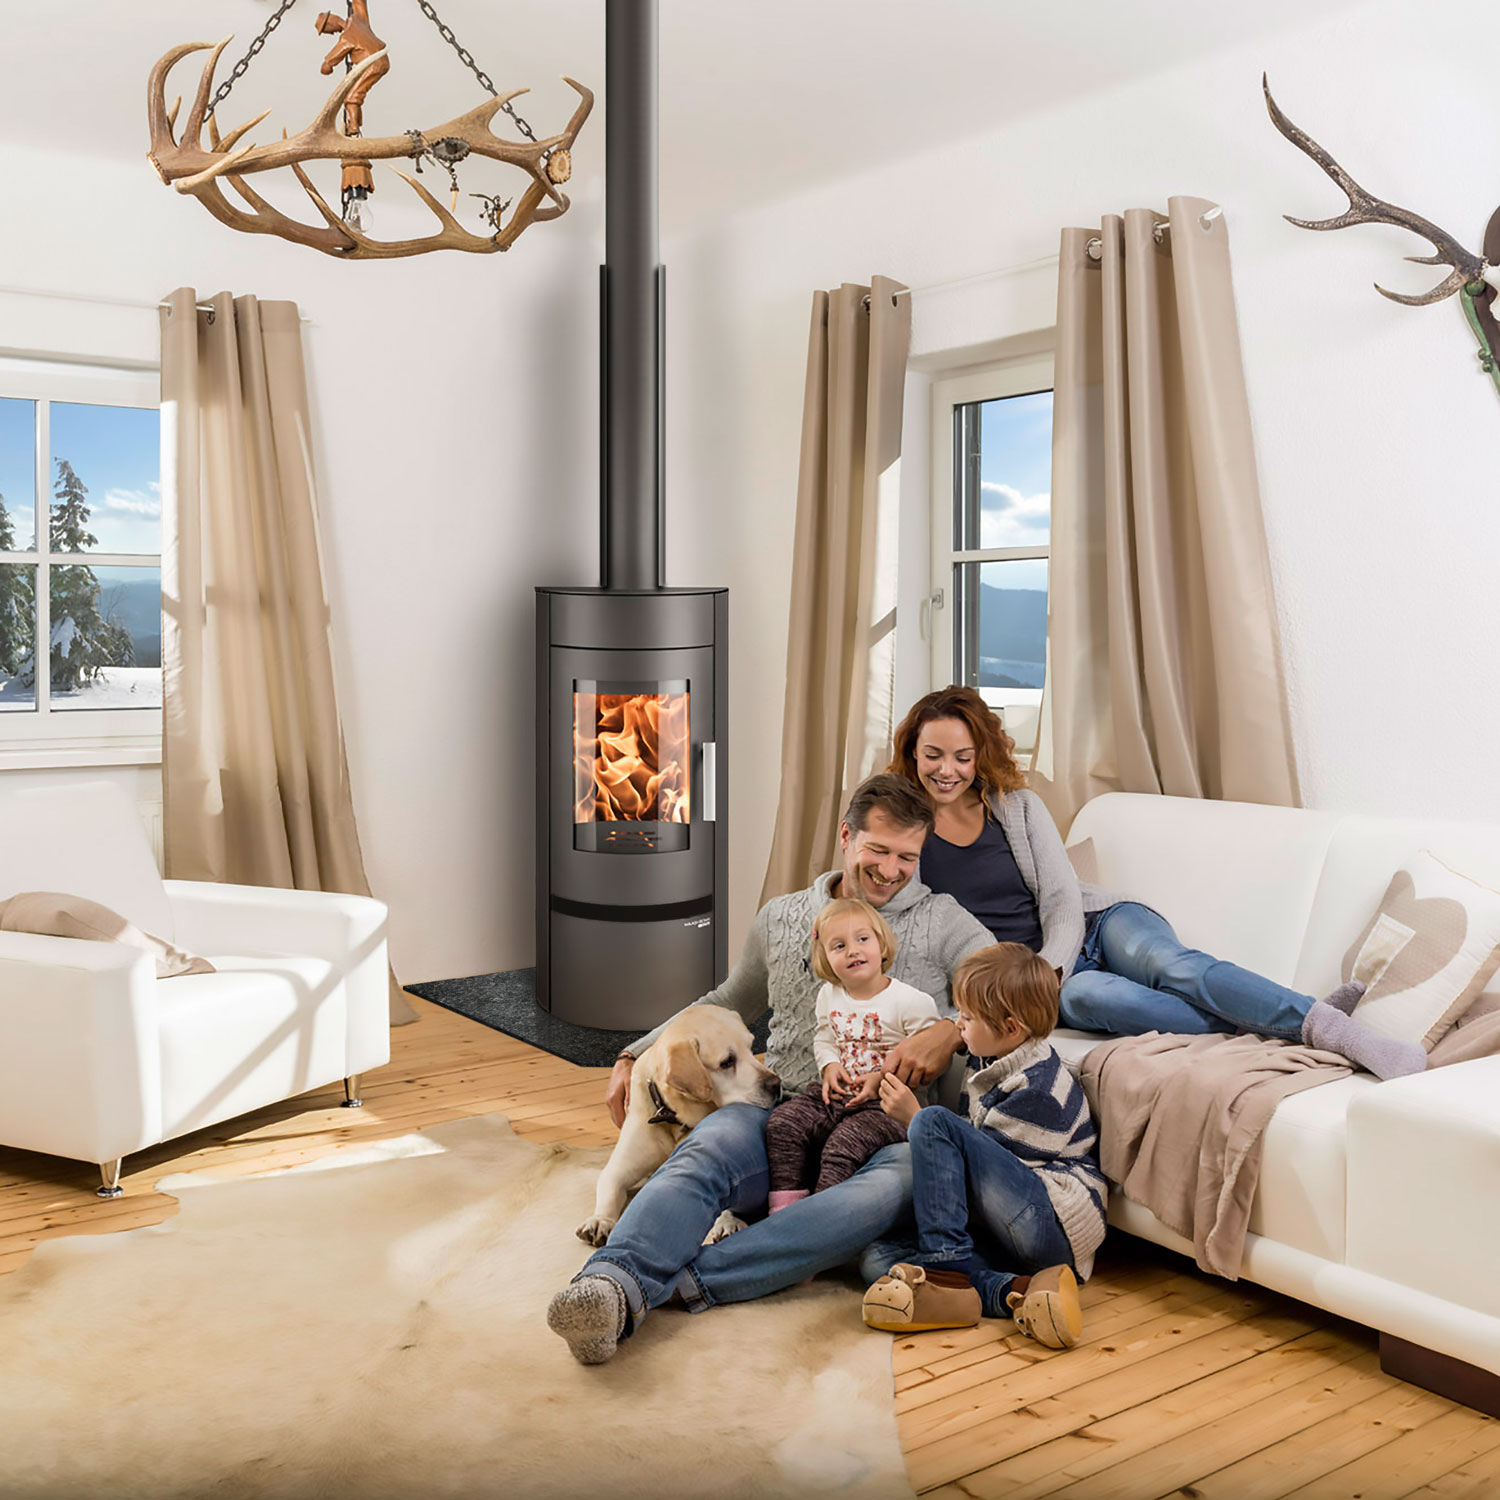 Euro Olbia wood heater in Scandinavian styled living room and family of four with dog